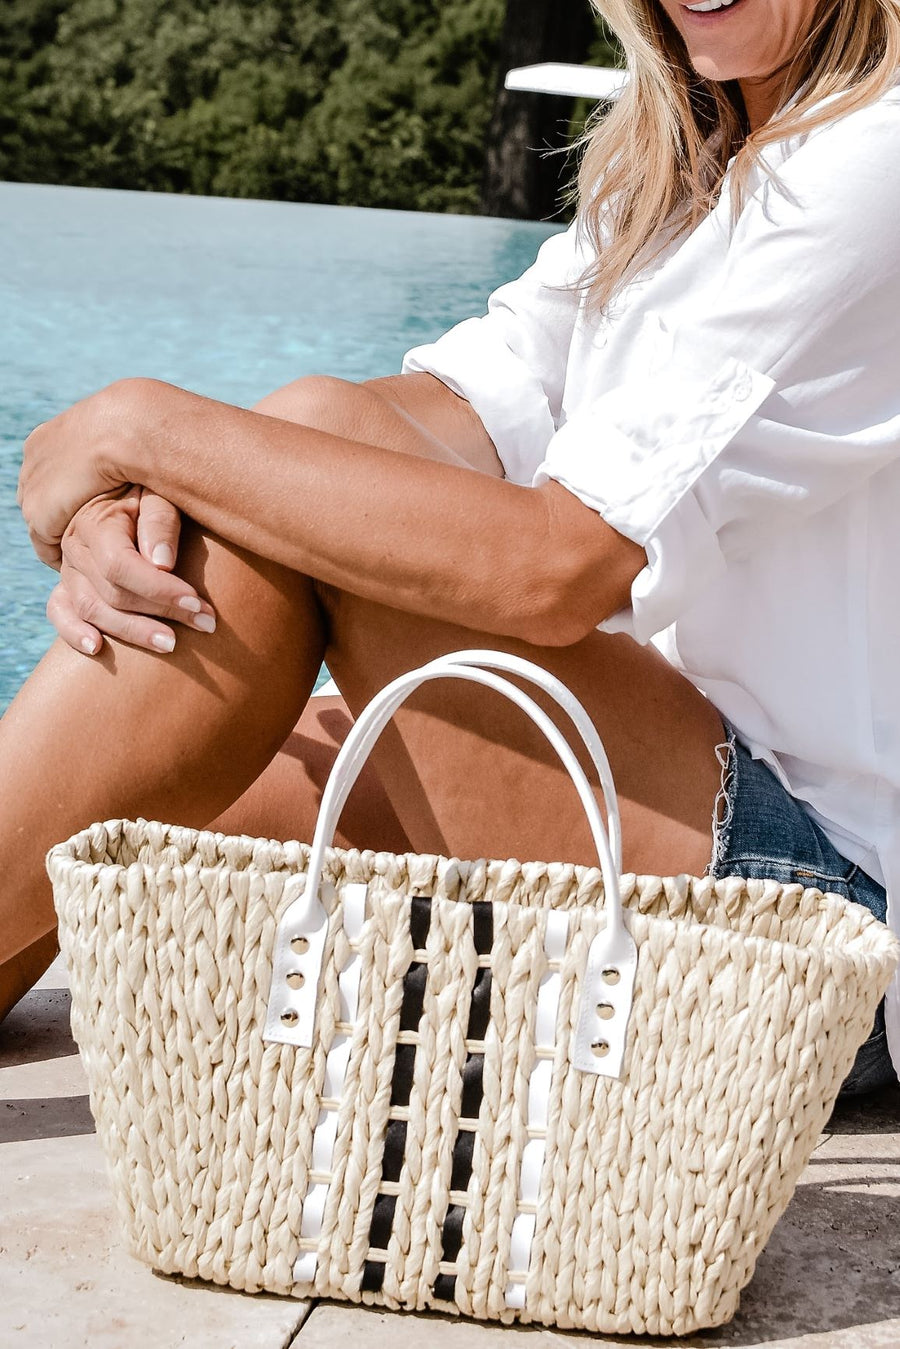 Person sitting by pool with small woven straw tote bag laced with black and white leather.